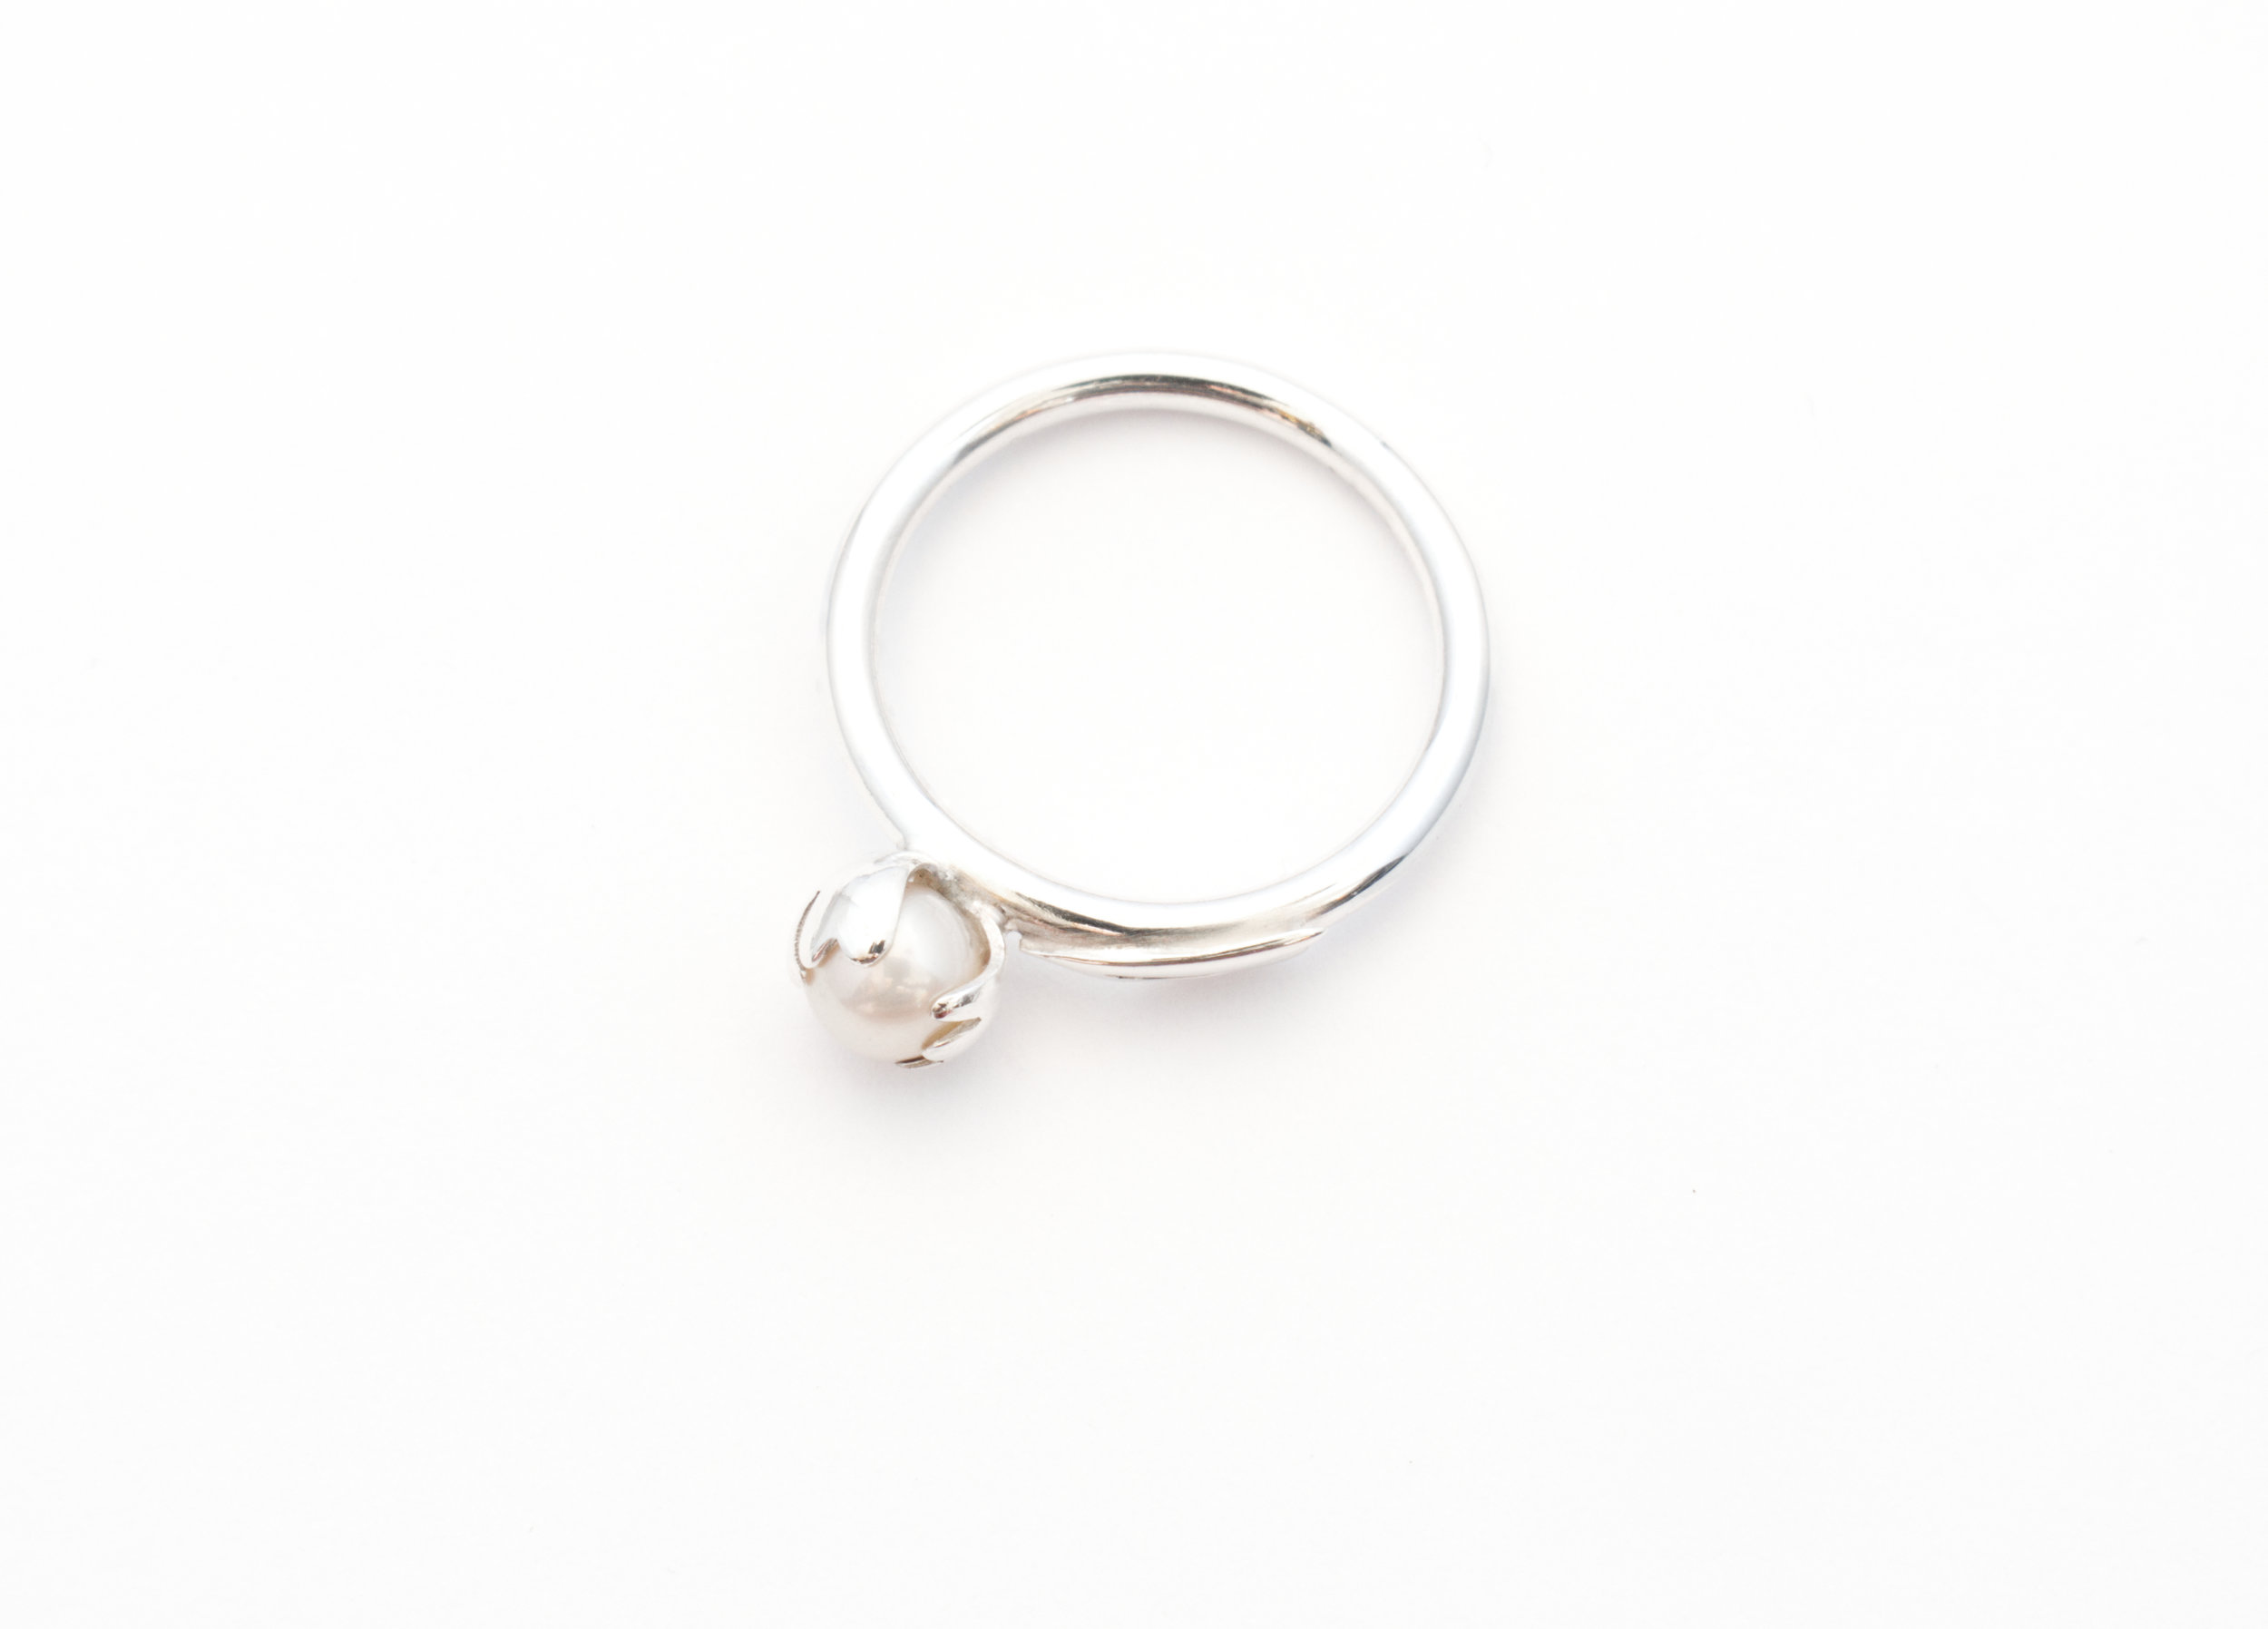 A side view of the peony ring.